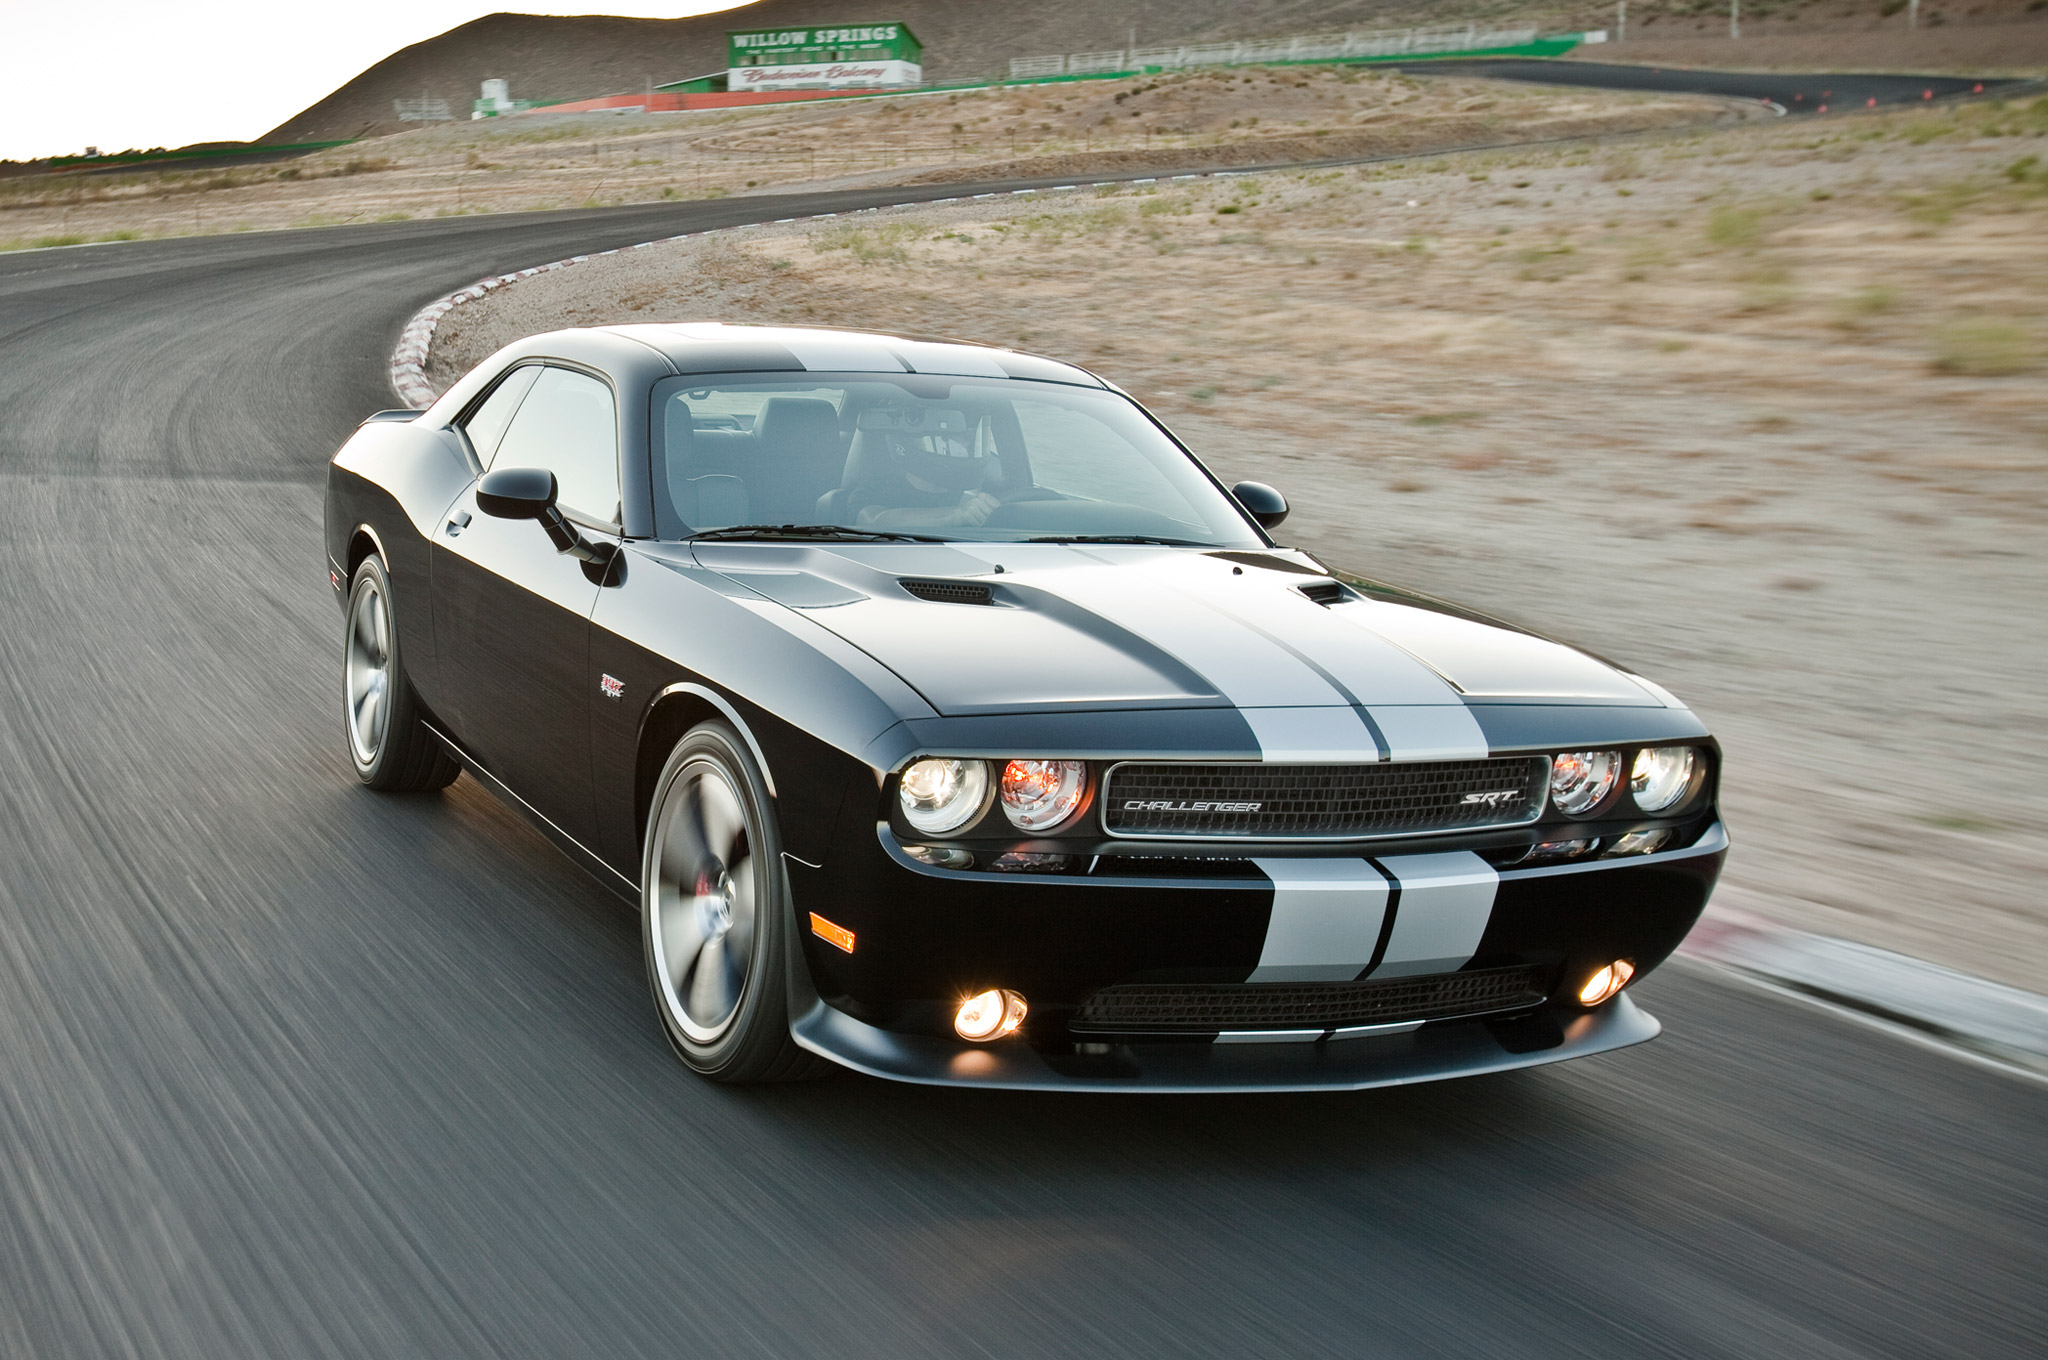 Auto and Cycle Hellcat? Dodge Challenger May Gain 6.2-Liter Supercharged V-8.  Article by Jake Holmes posted May 20, 2013